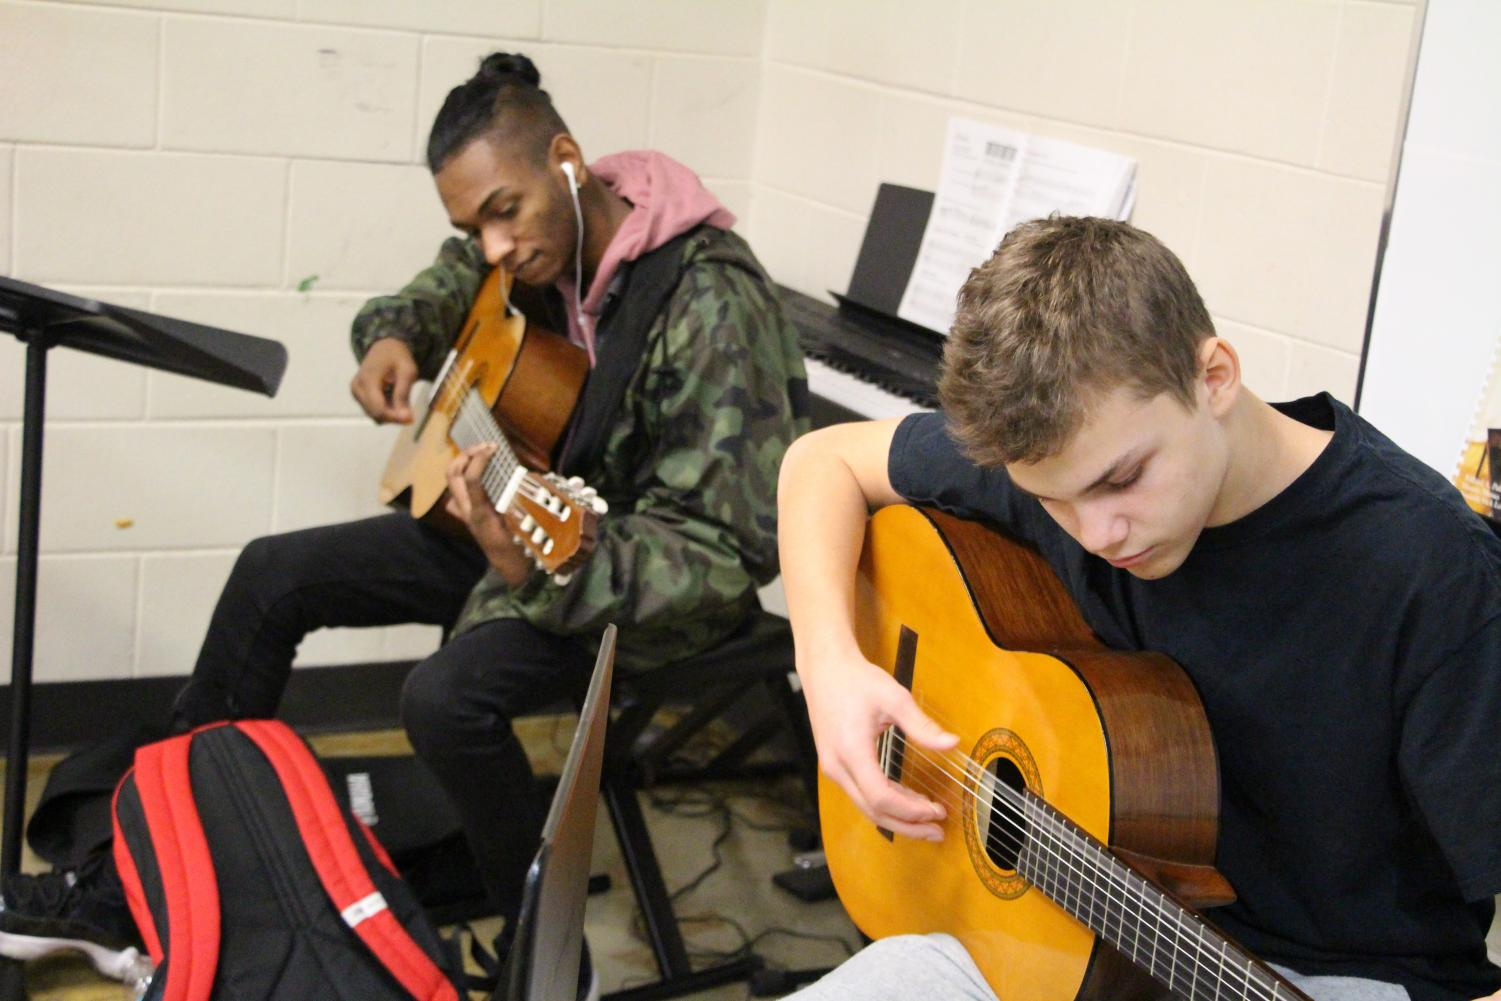 """Omesh Shiwmangal, on the left, and Sam Guindon practice an original composition for a relief album music teacher Sarah Minette started. The profits of the album will go towards the Red Cross. """"It's a cool experience to mix an album and it puts the project in the hands of the students,"""" said Minette."""